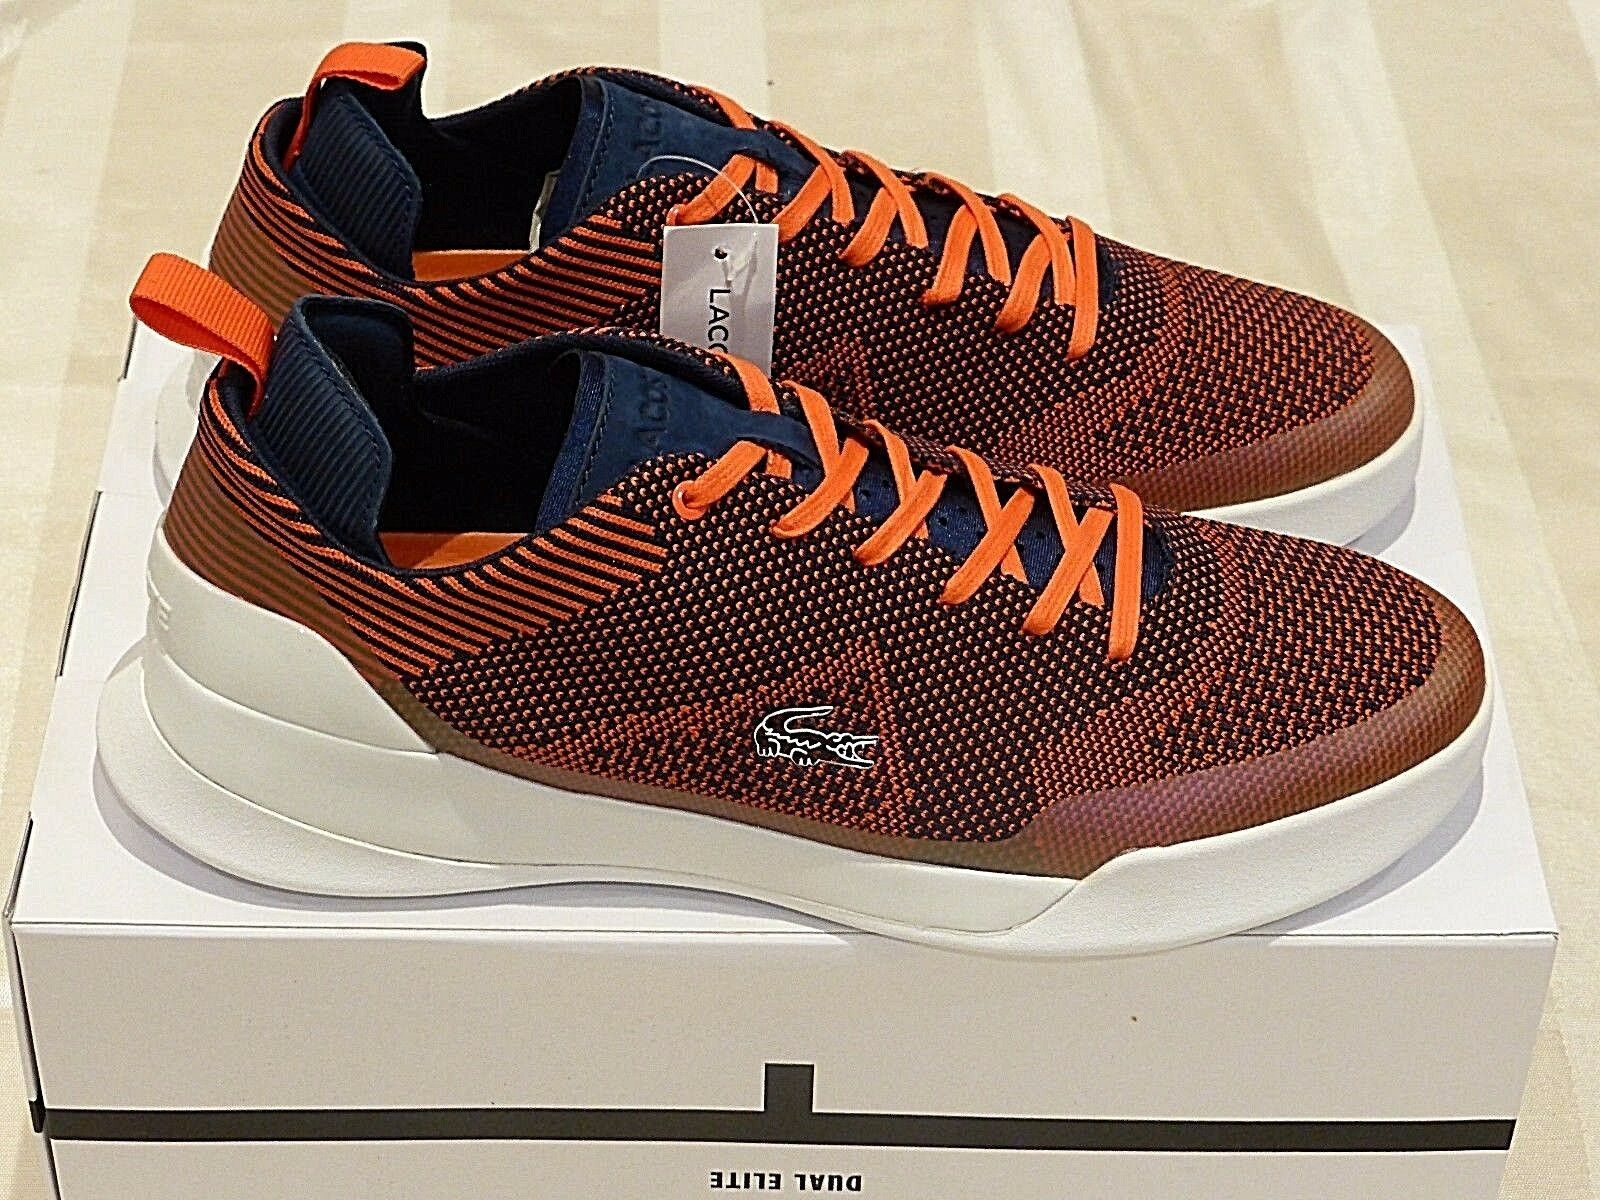 "LACOSTE LT Dual Max Elite 317 2 Spm ""Red Navy"" New (9US) Max Dual Men Air gel ultra 90 6f4d96"